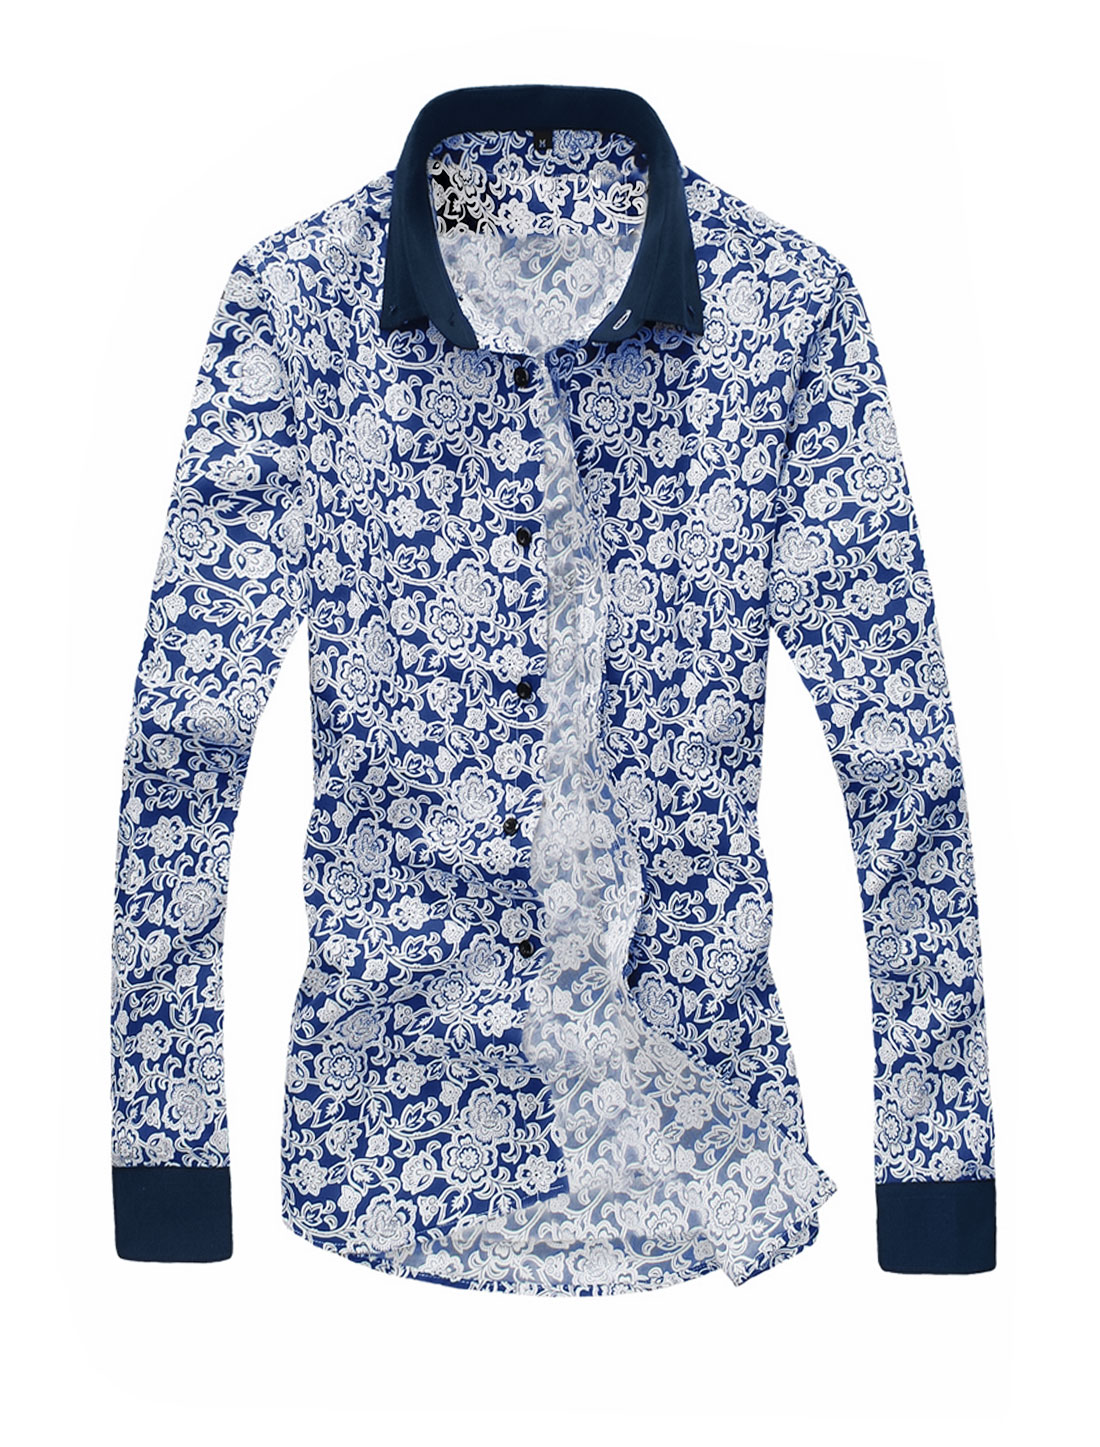 Men Allover Floral Prints Button Closed Casual Shirt Dark Blue White M